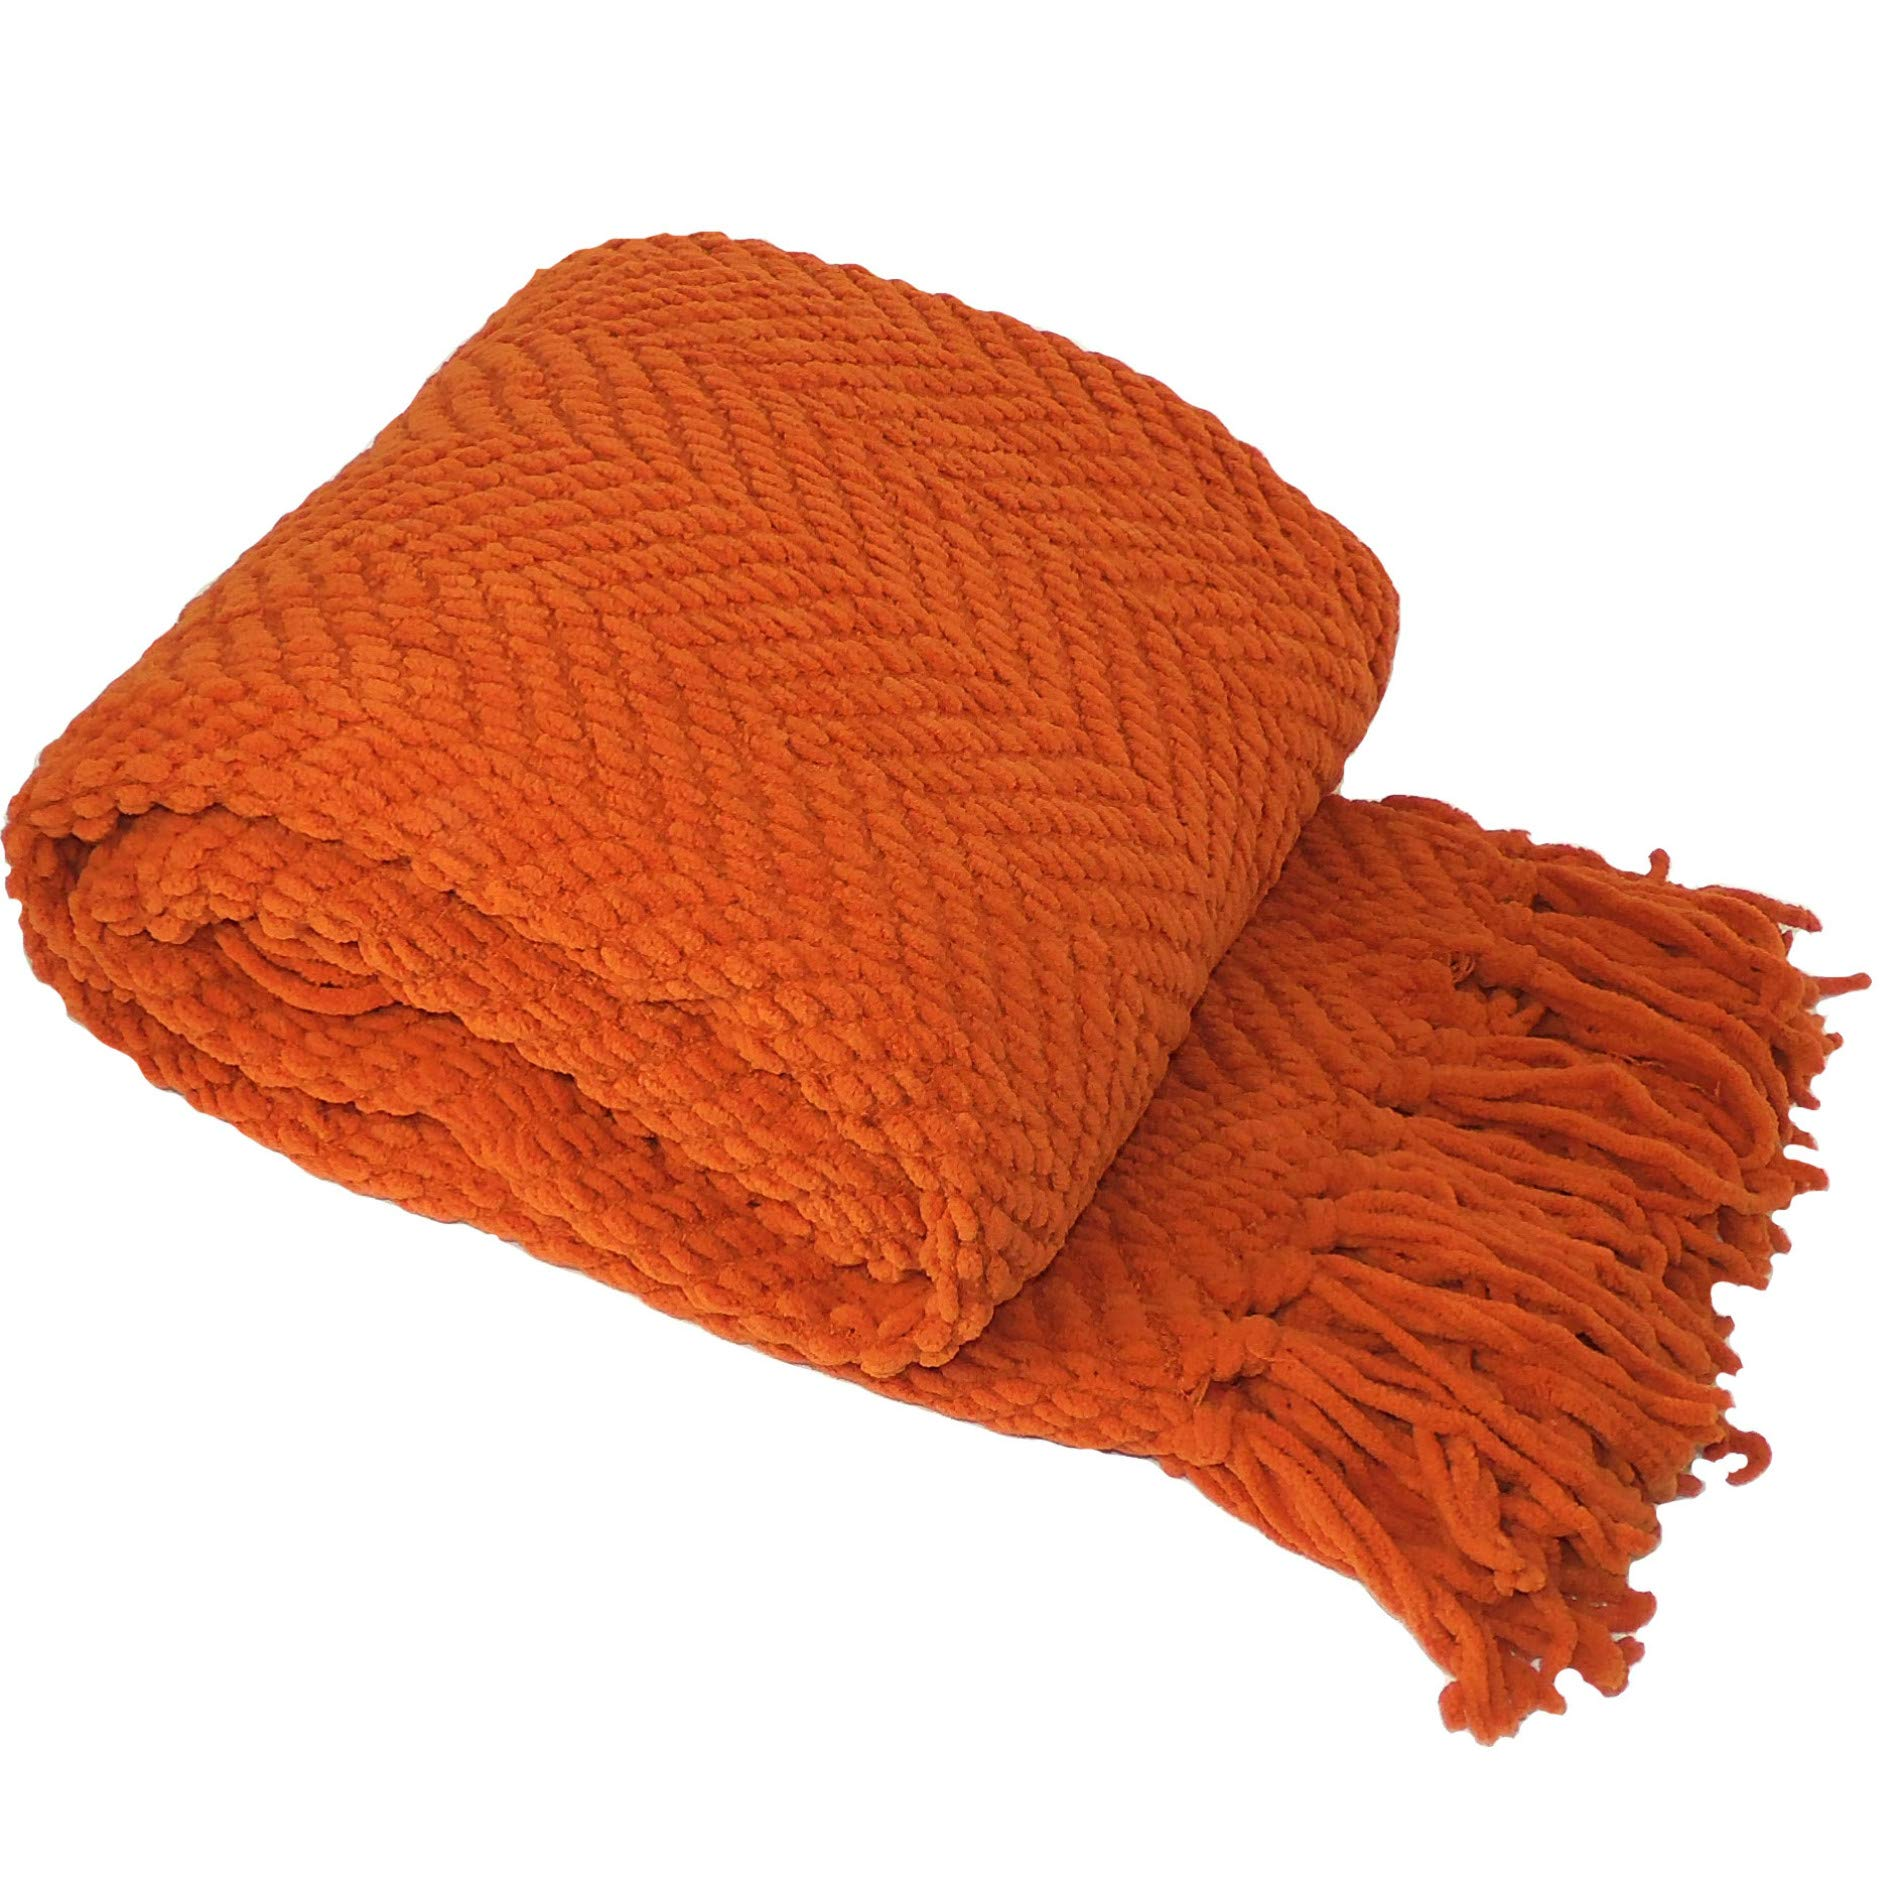 Home Soft Things Boon Knitted Tweed Throw Couch Cover Blanket, 50 x 60, Burnt Orange